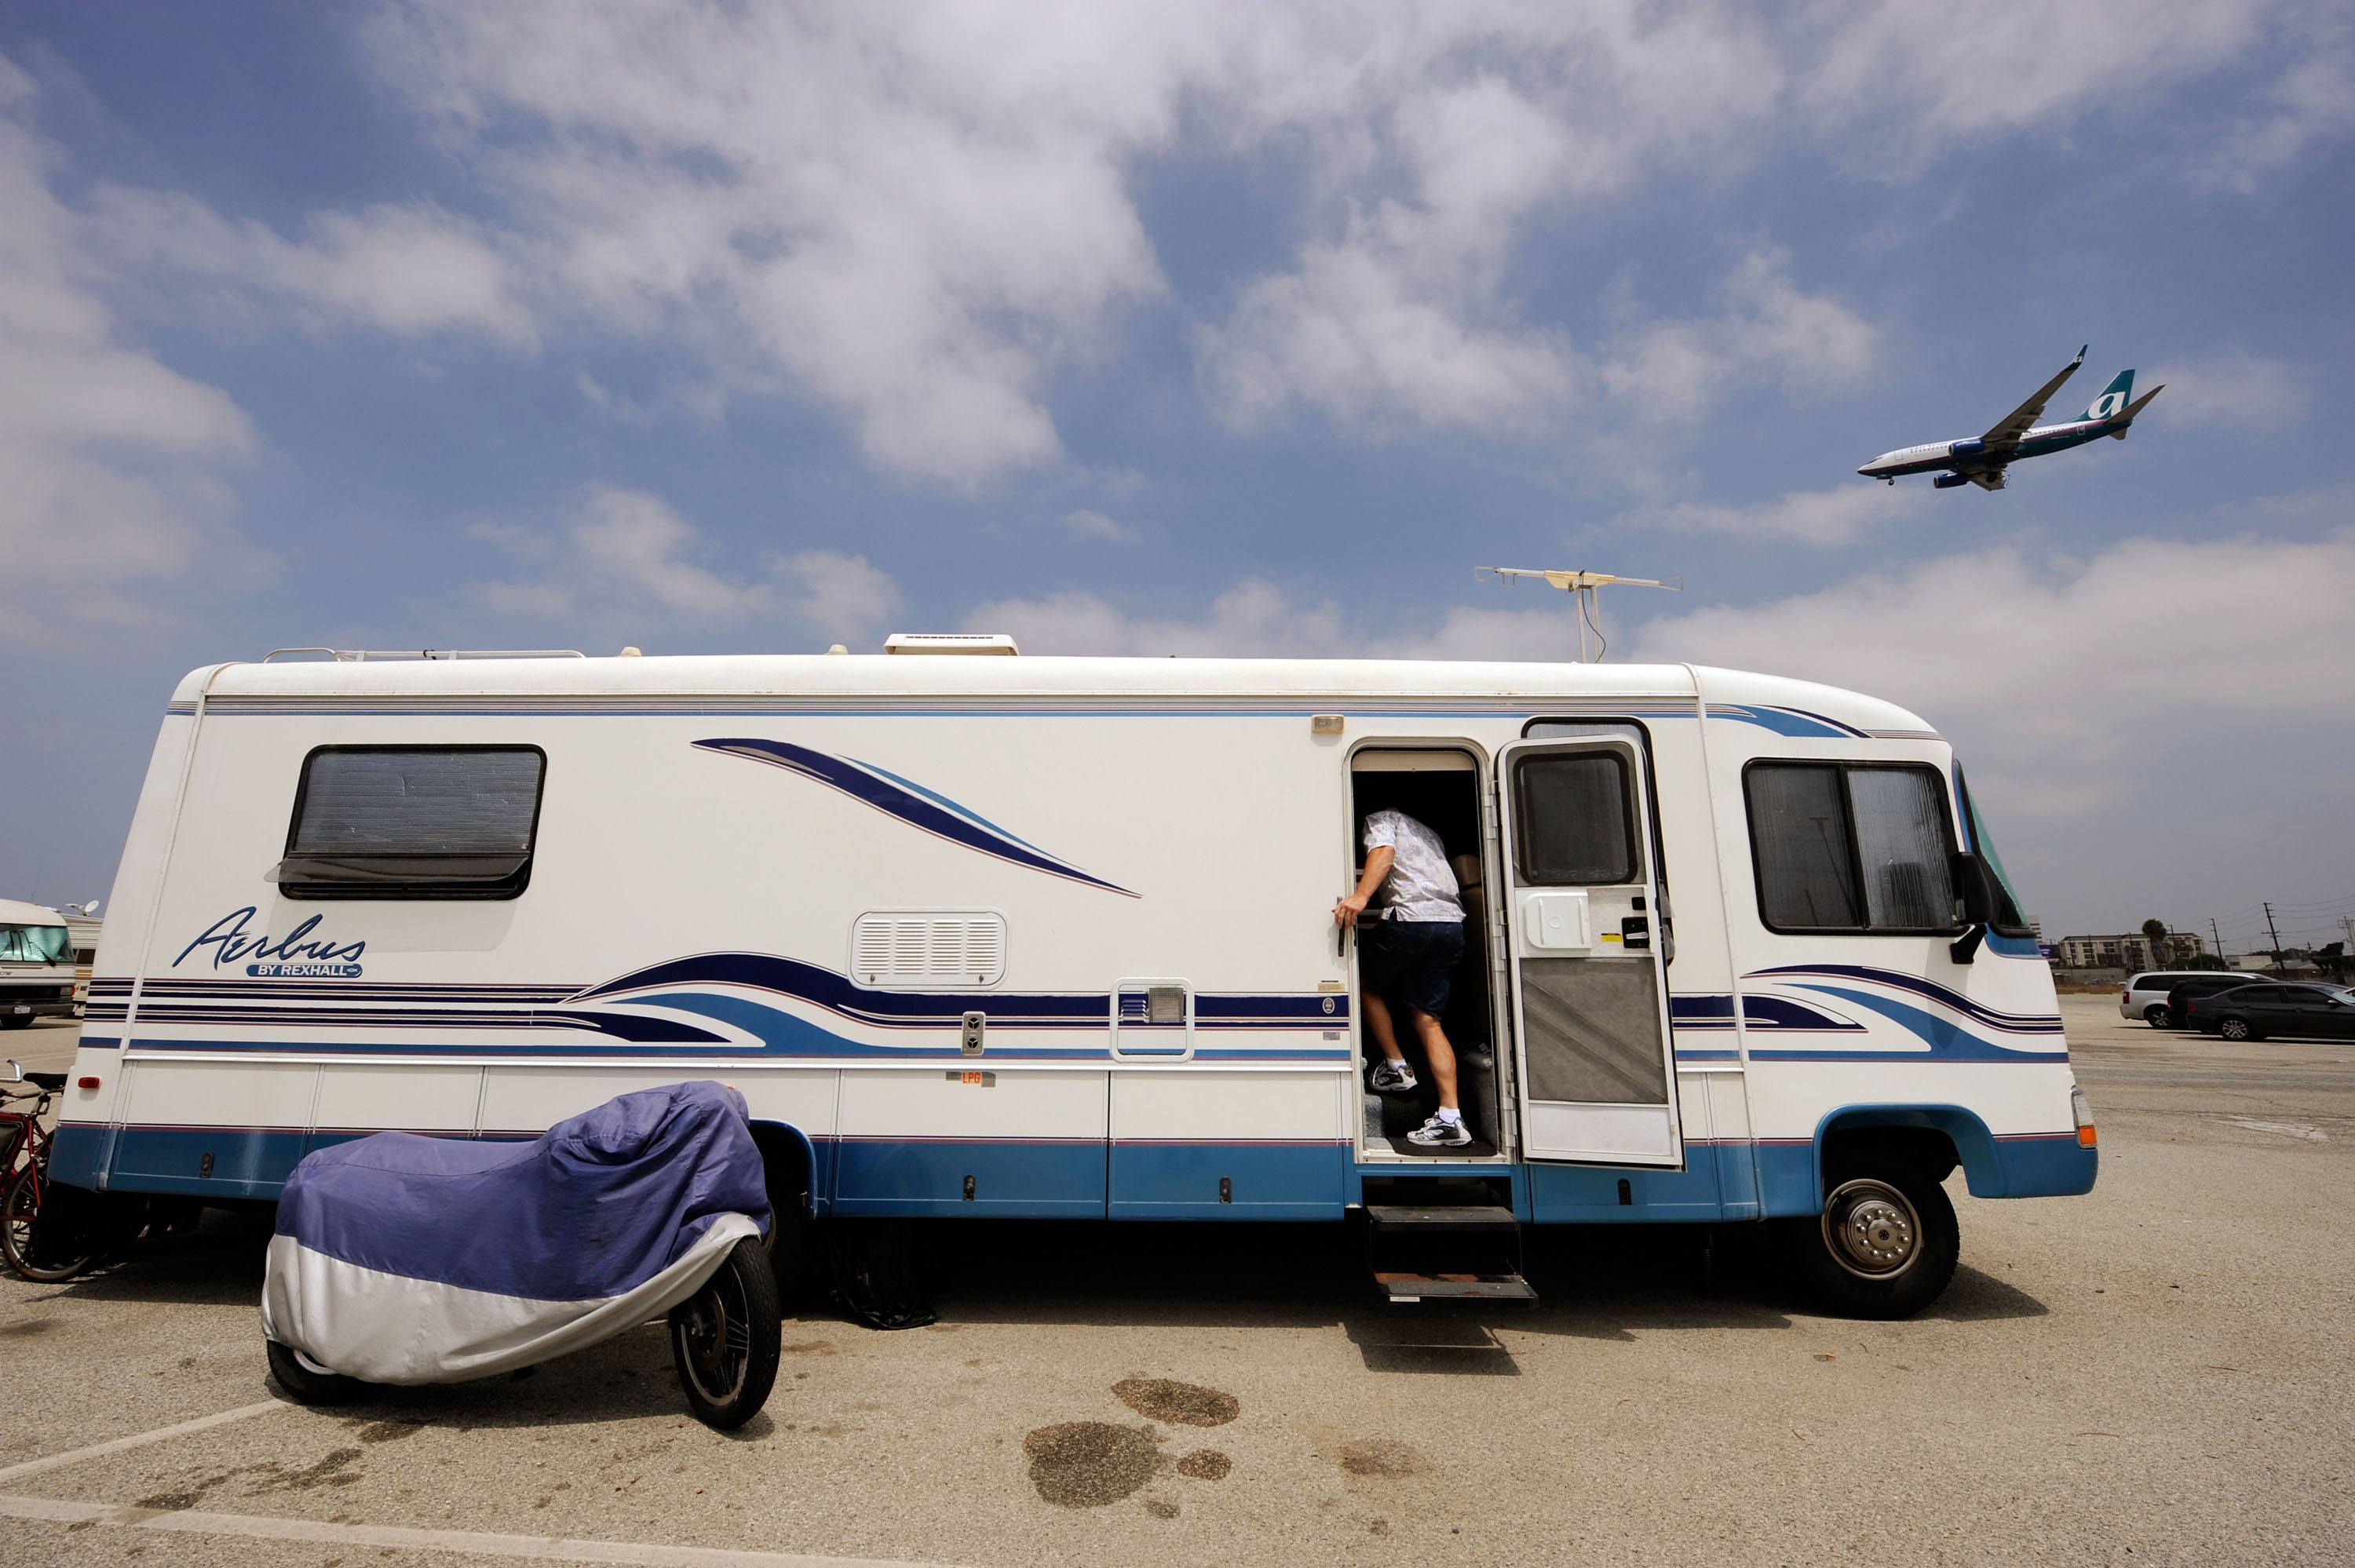 Unusual Jobs for Retirees Who Want to Live That RV Life